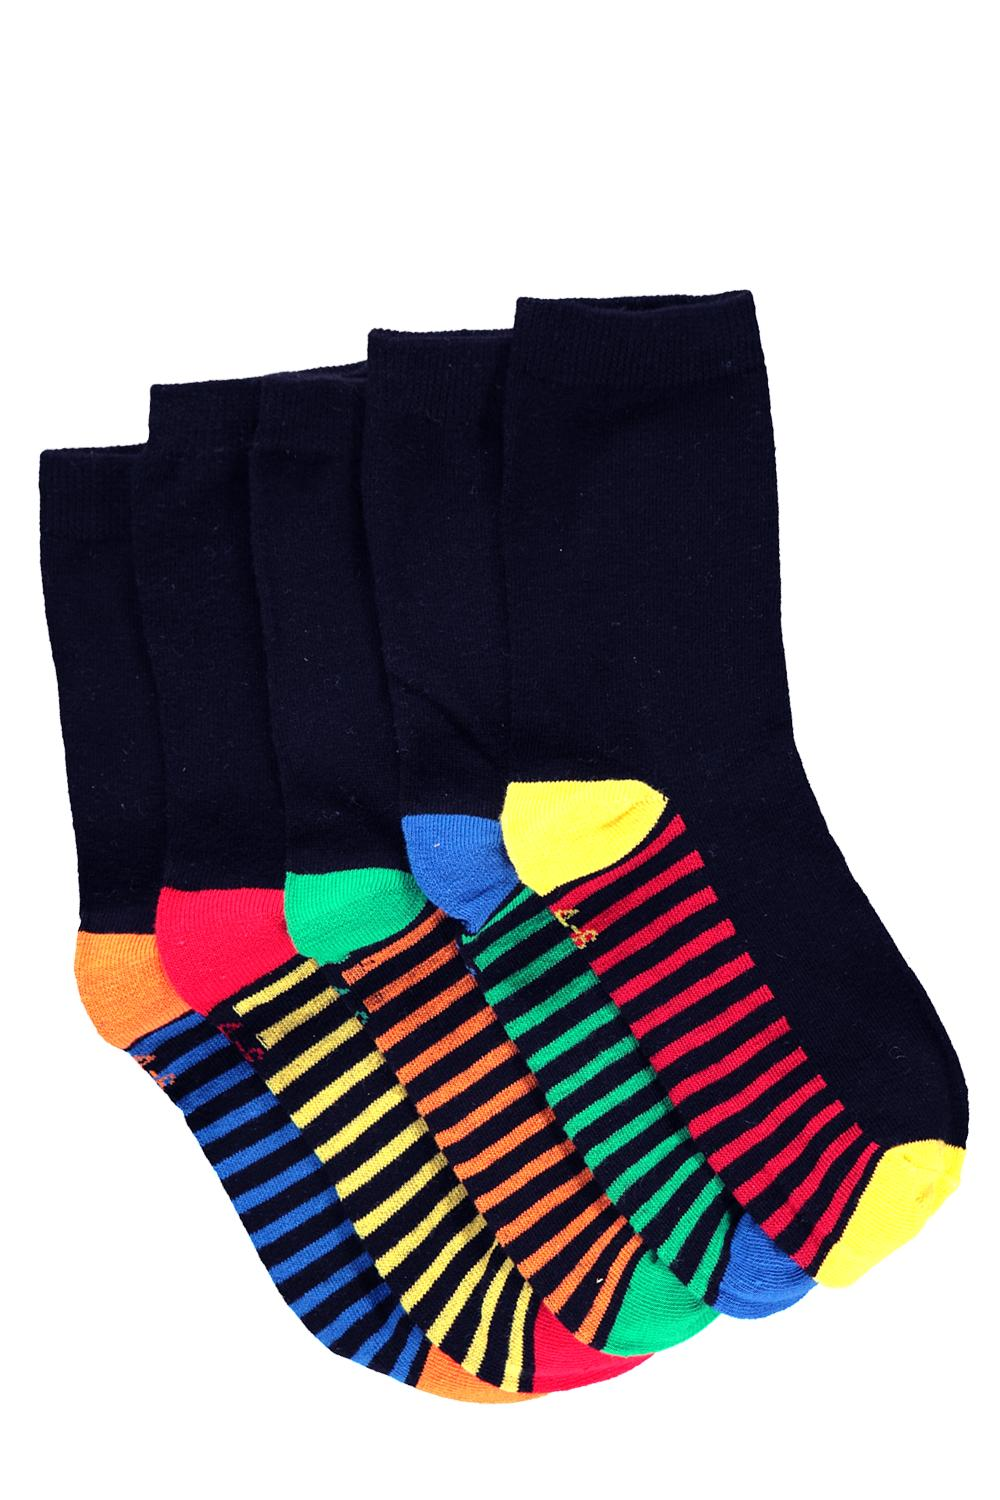 Boys Contrast Colour Socks 5 Pack